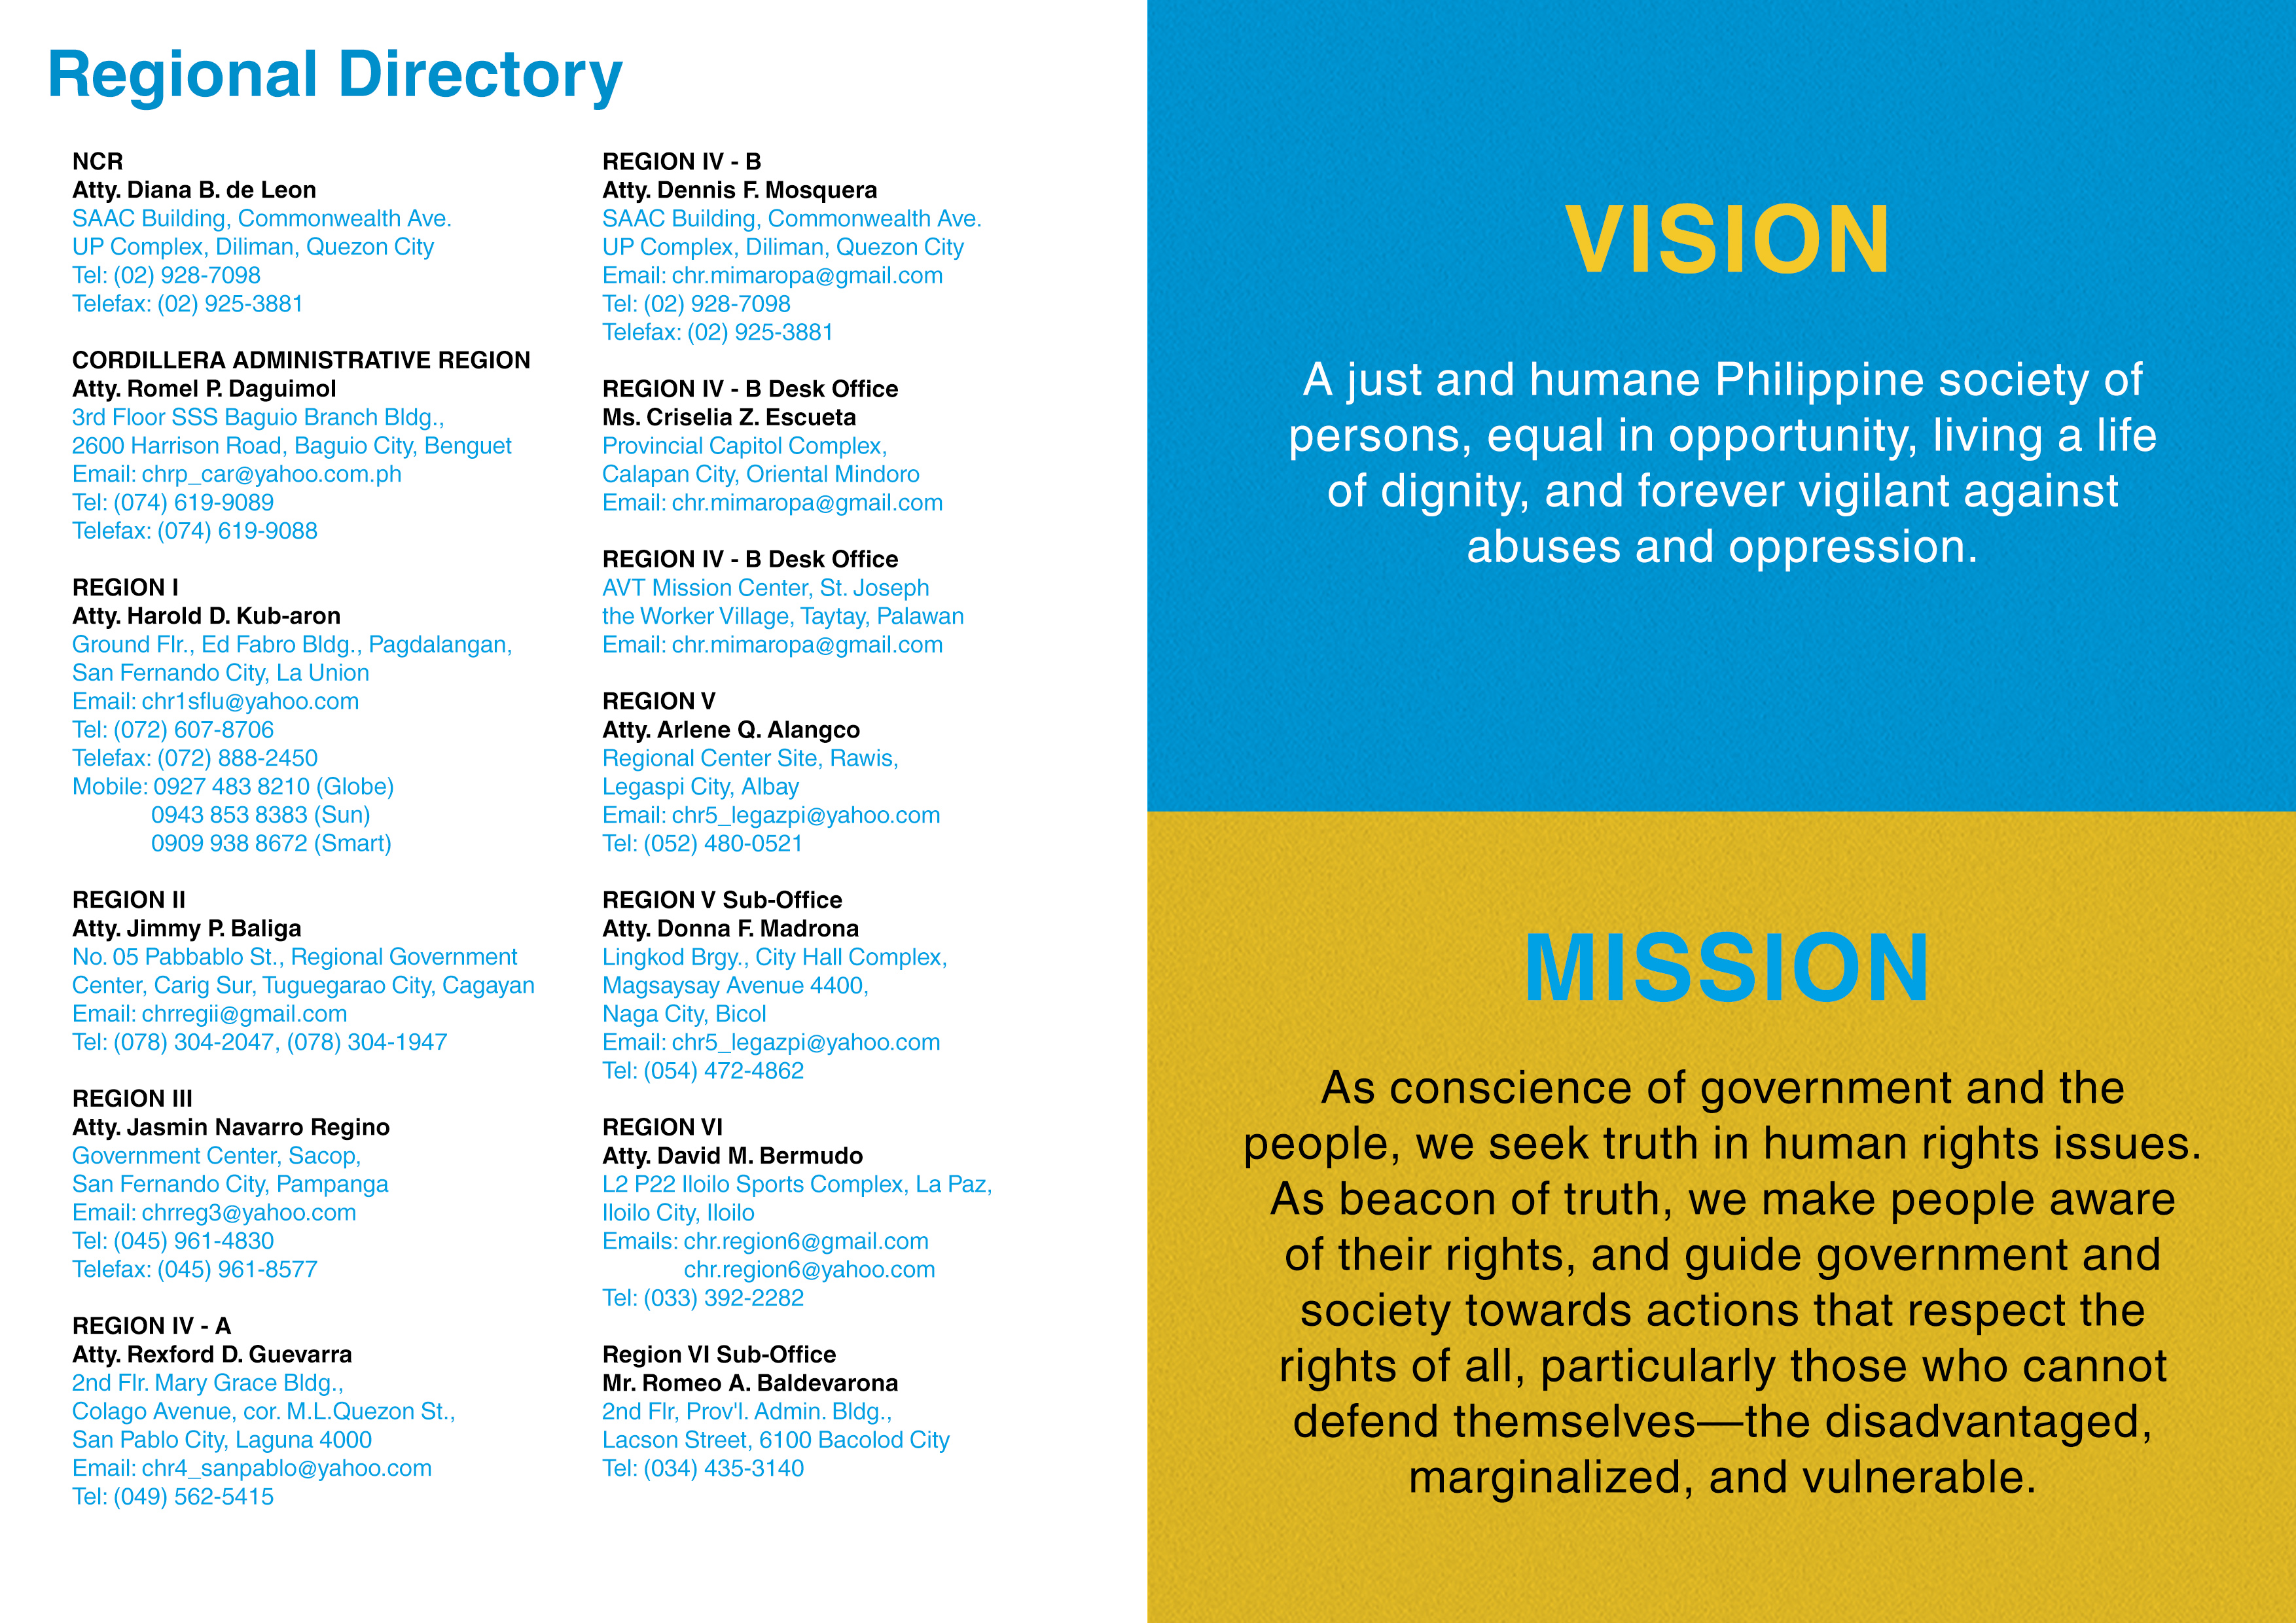 directory+VisionMission2